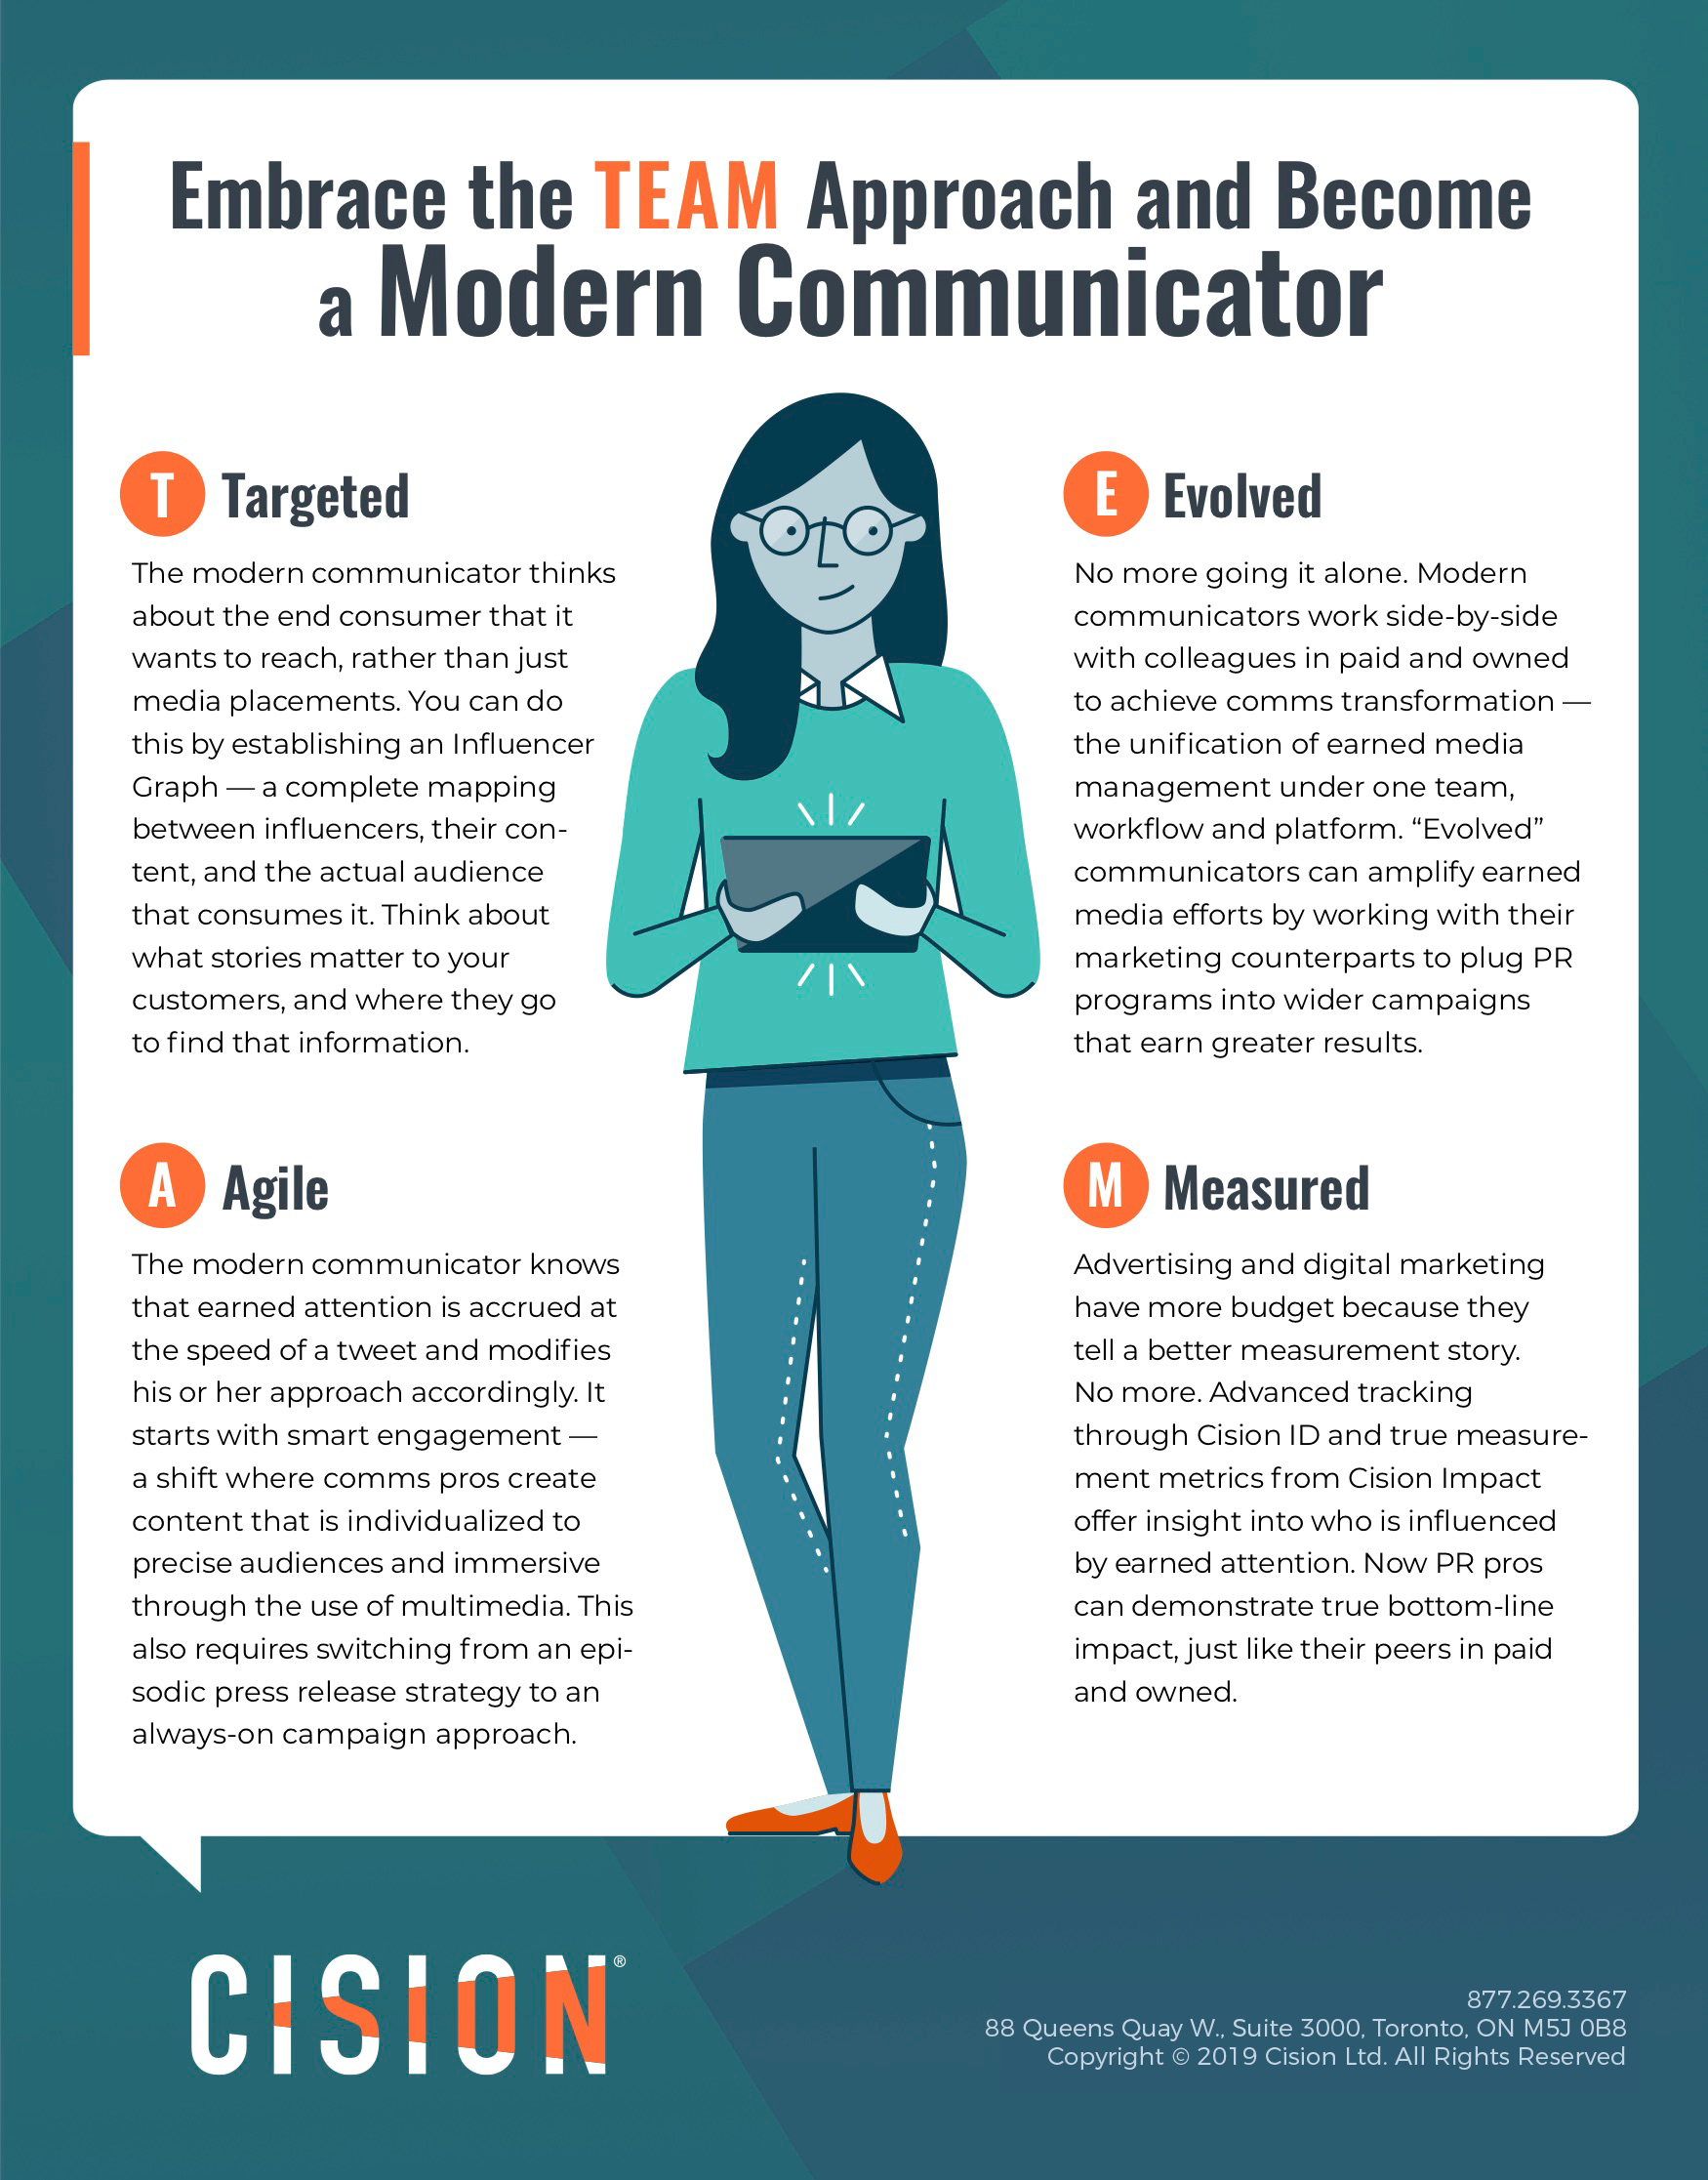 Cision_TEAM_infographic-CA.png